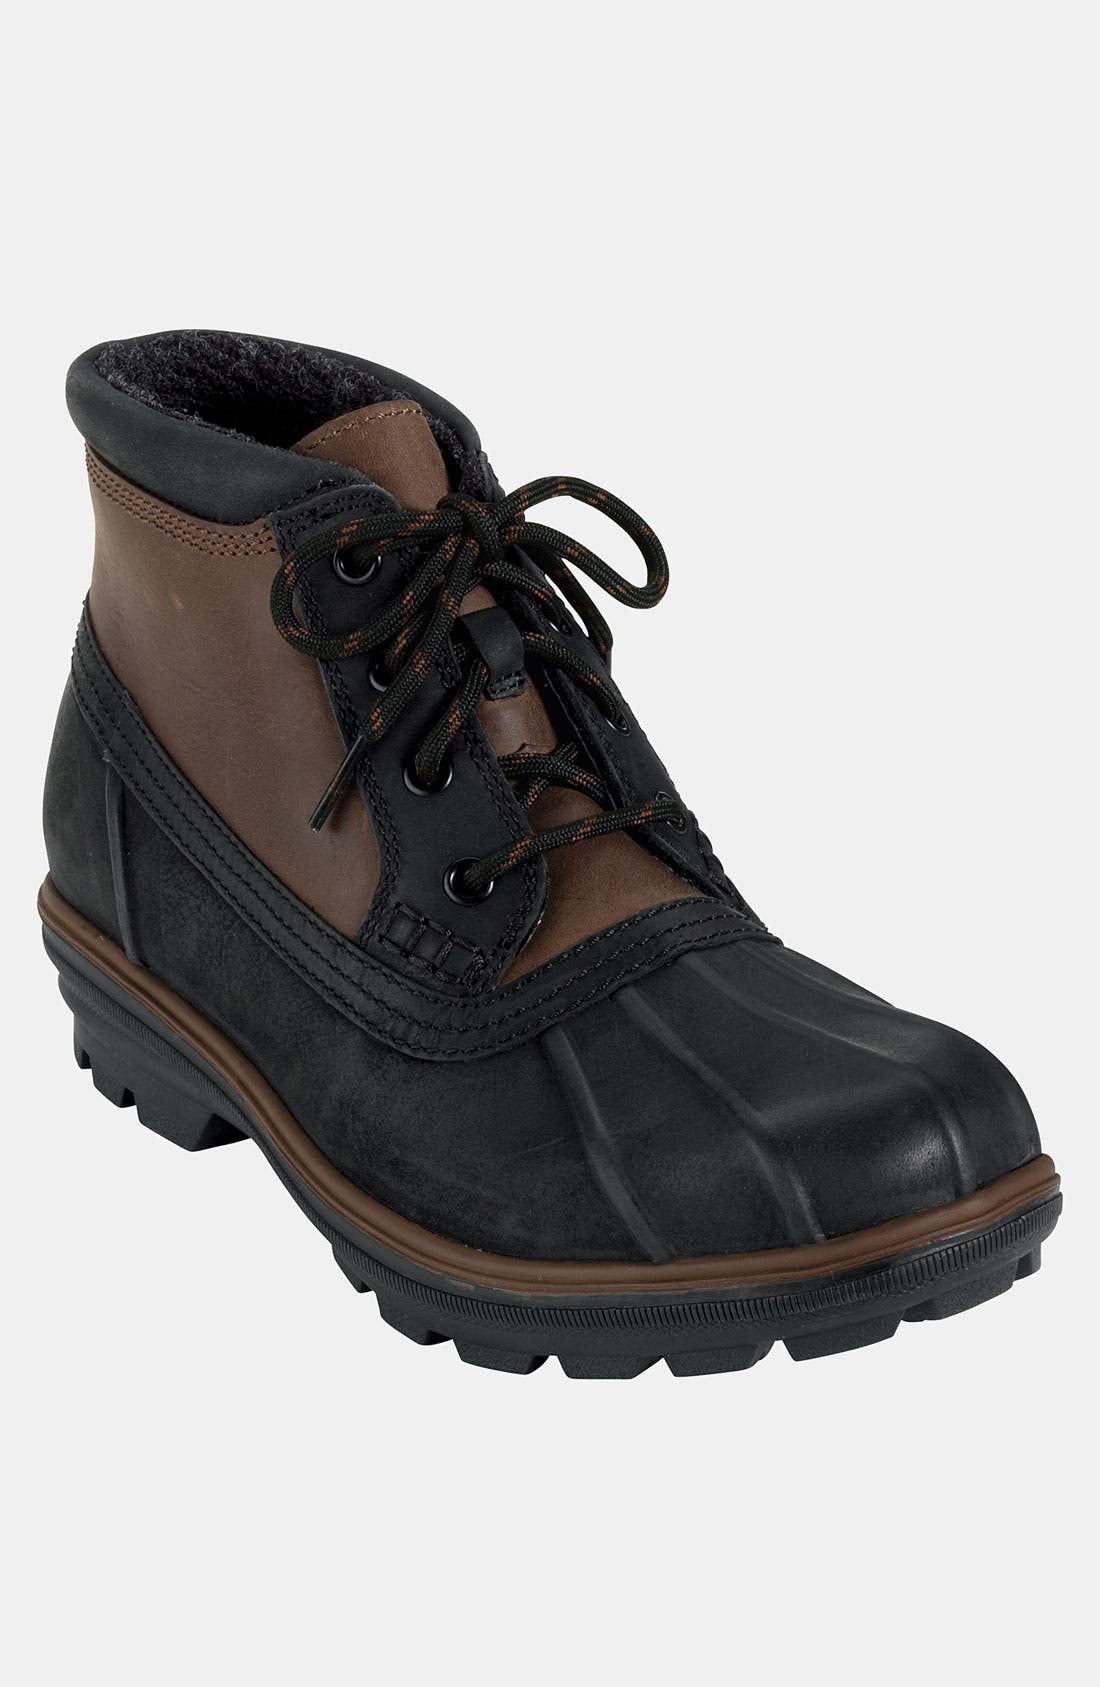 Alternate Image 1 Selected - Cole Haan 'Air Scout' Snow Boot (Online Only)